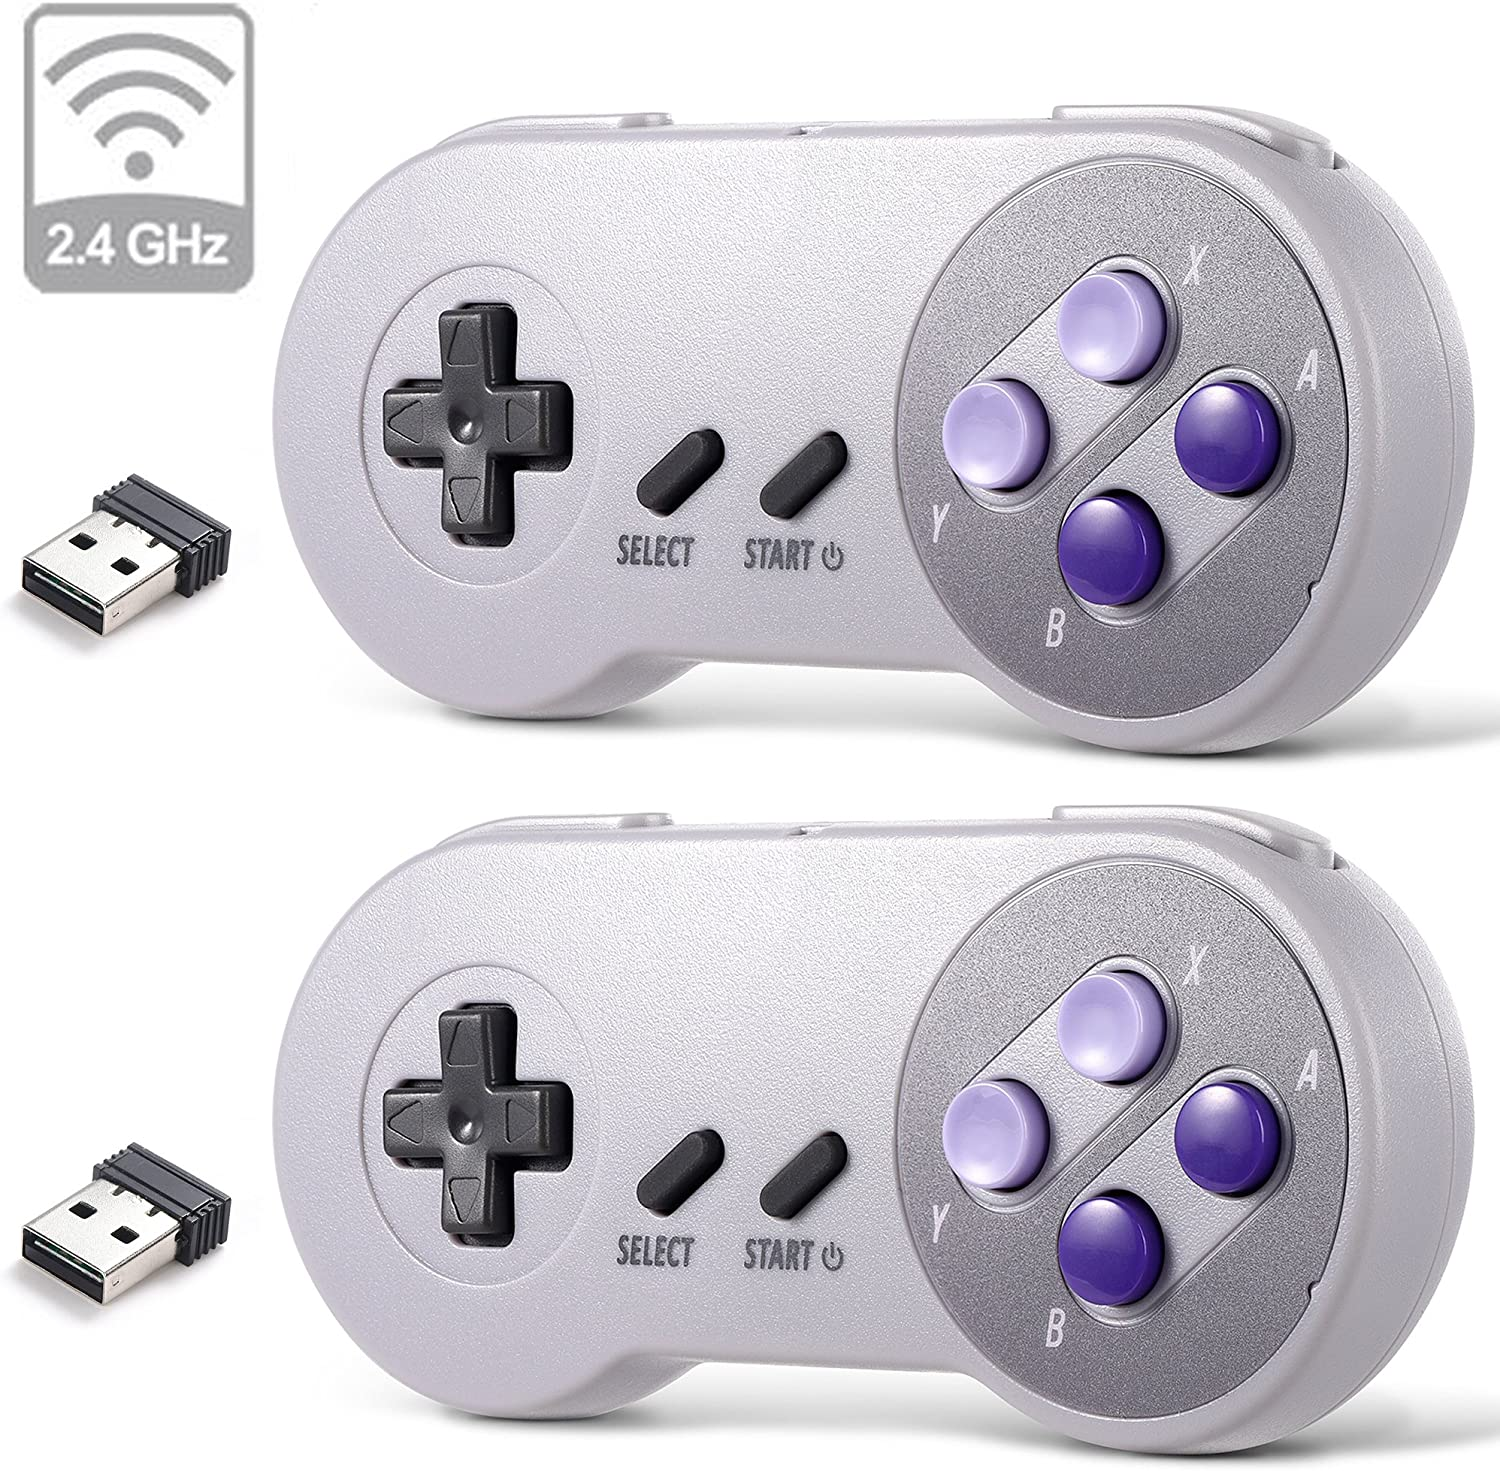 2 Pack 2.4 GHz Wireless USB Controller Compatible with Super Famicom Games, iNNEXT SNES Retro USB PC Super Classic Controller for Windows PC MAC Linux Genesis Raspberry Pi Retropie (Purple/Gray)